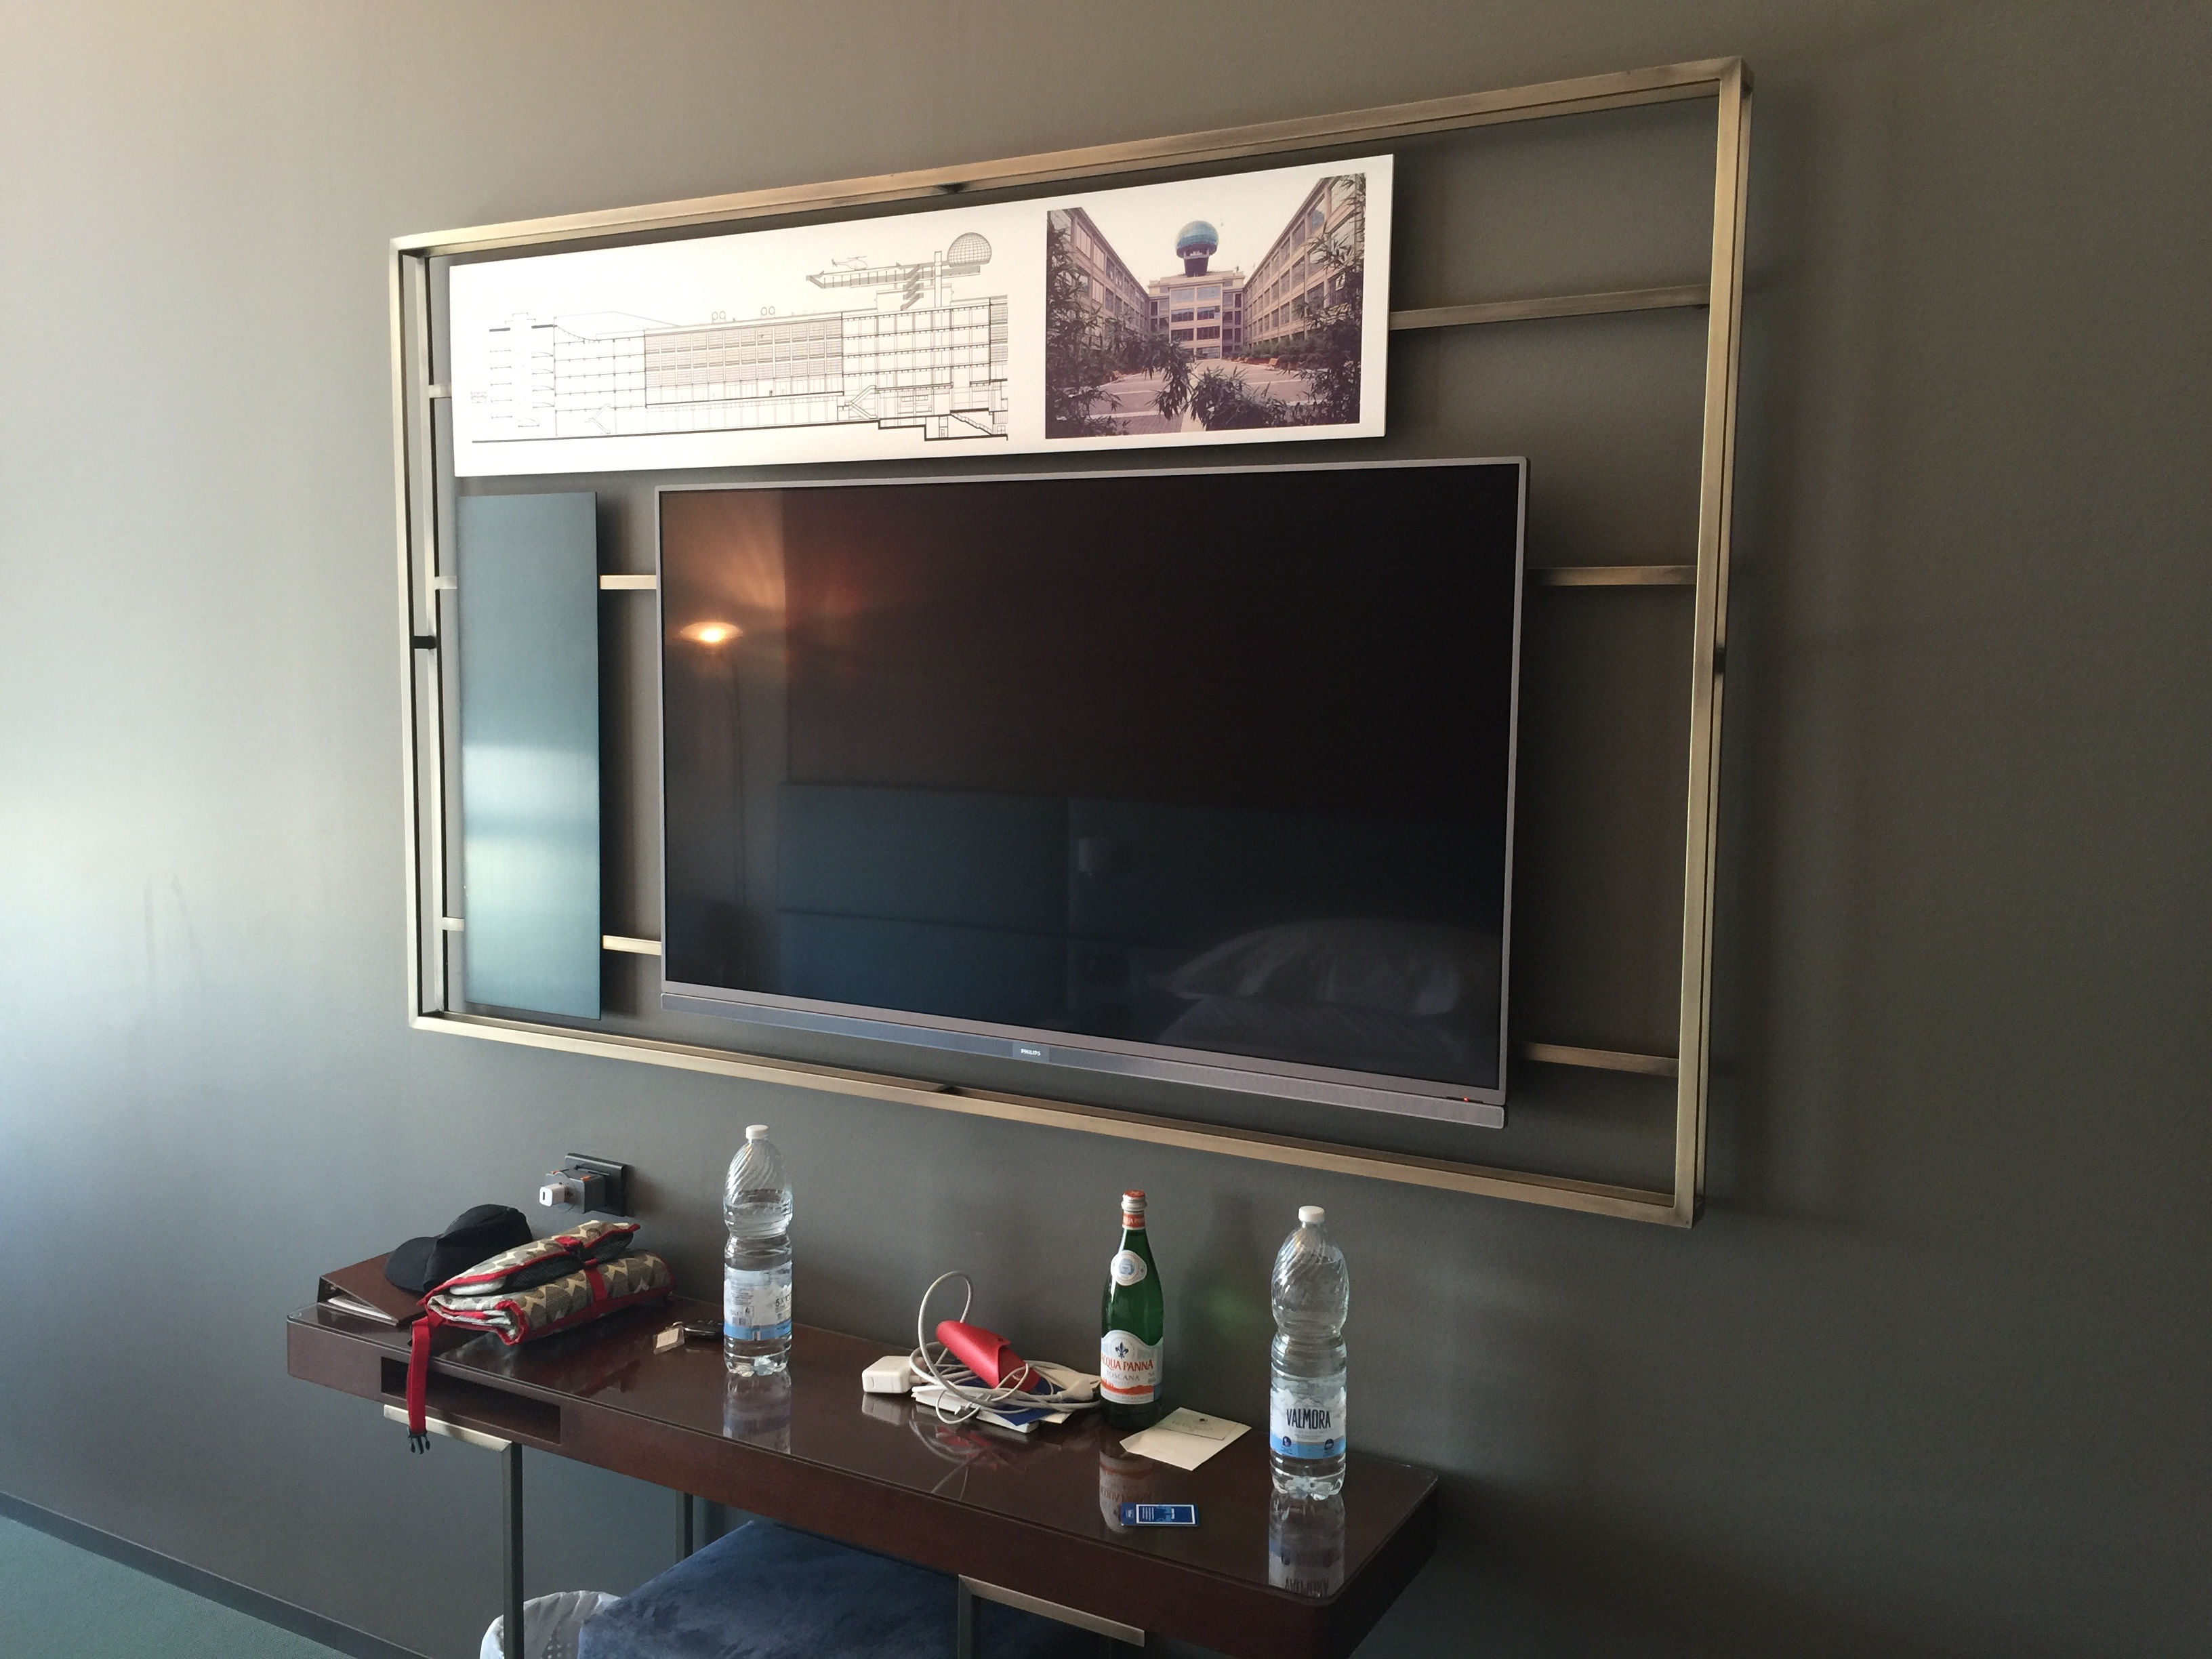 Industrial design around the TV set - DoubleTree Turin Lingotto